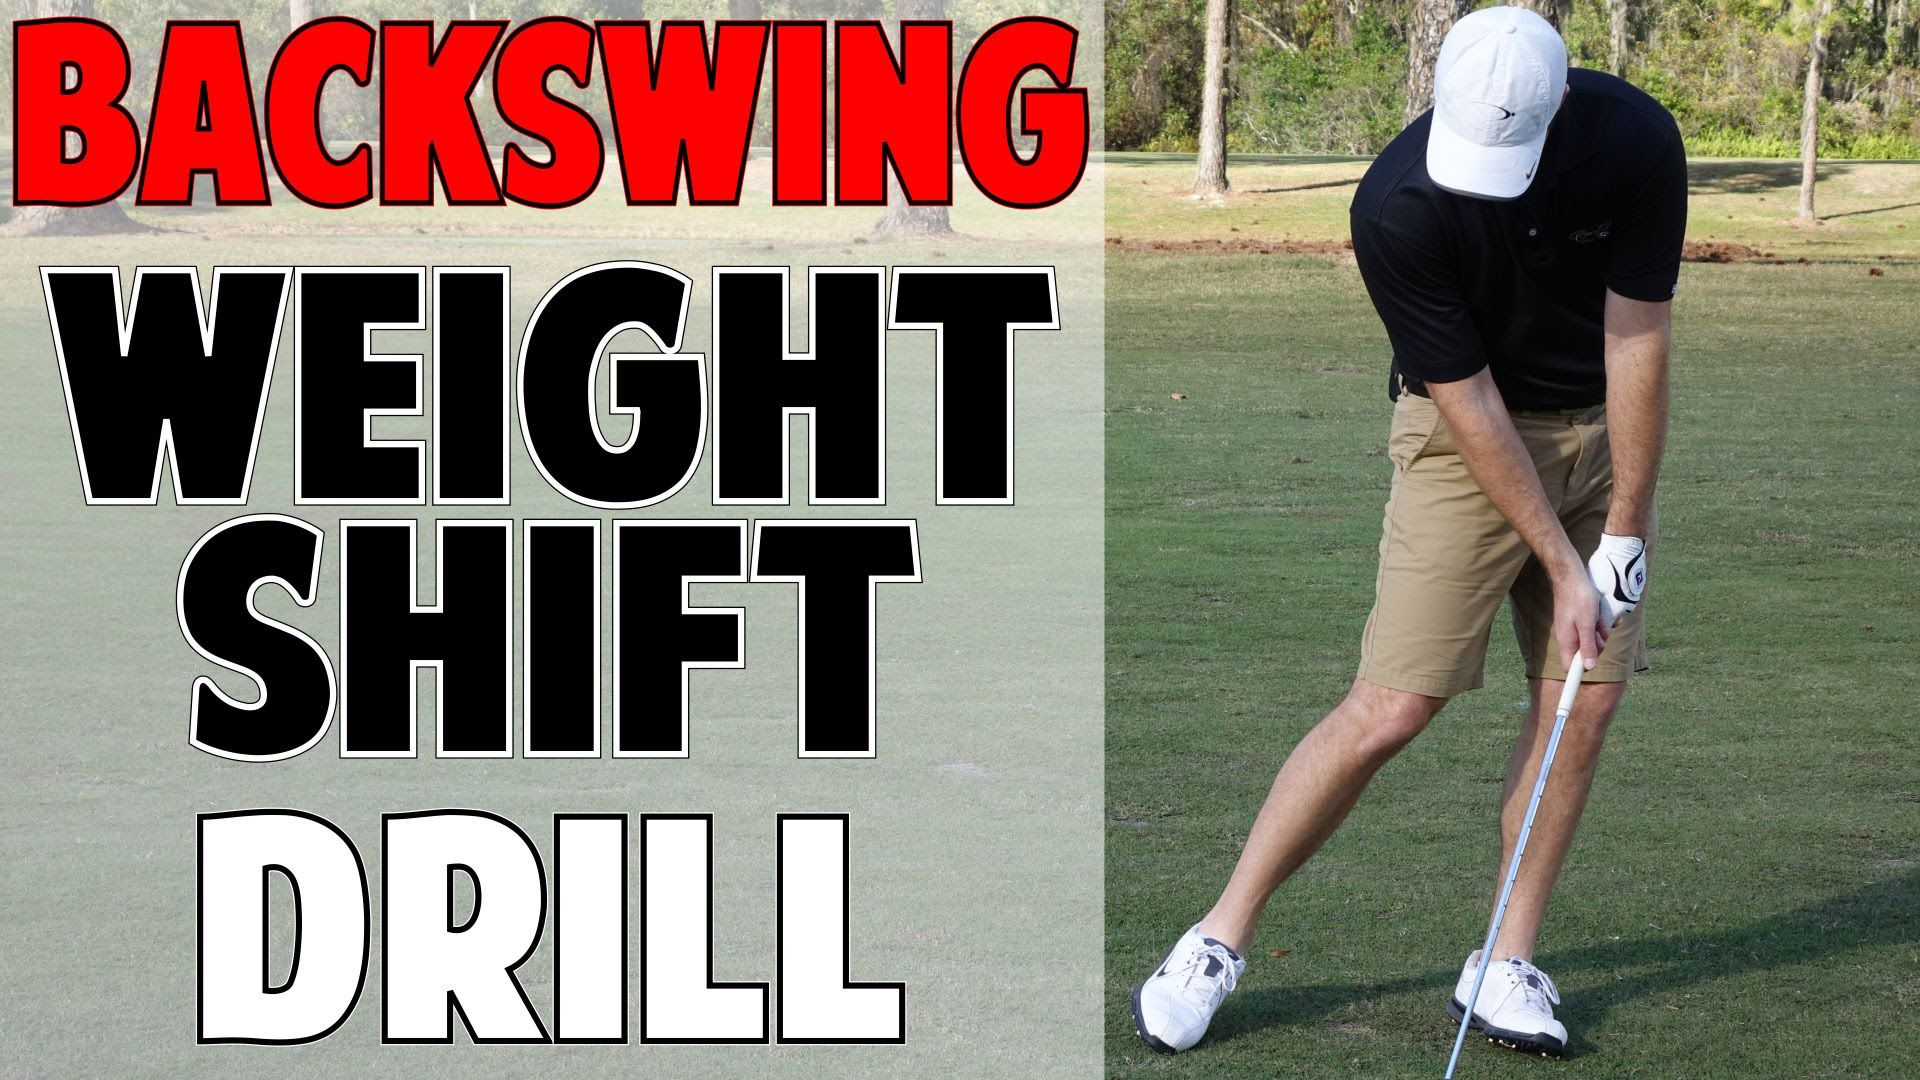 Golf backswing weight shift drill step right step